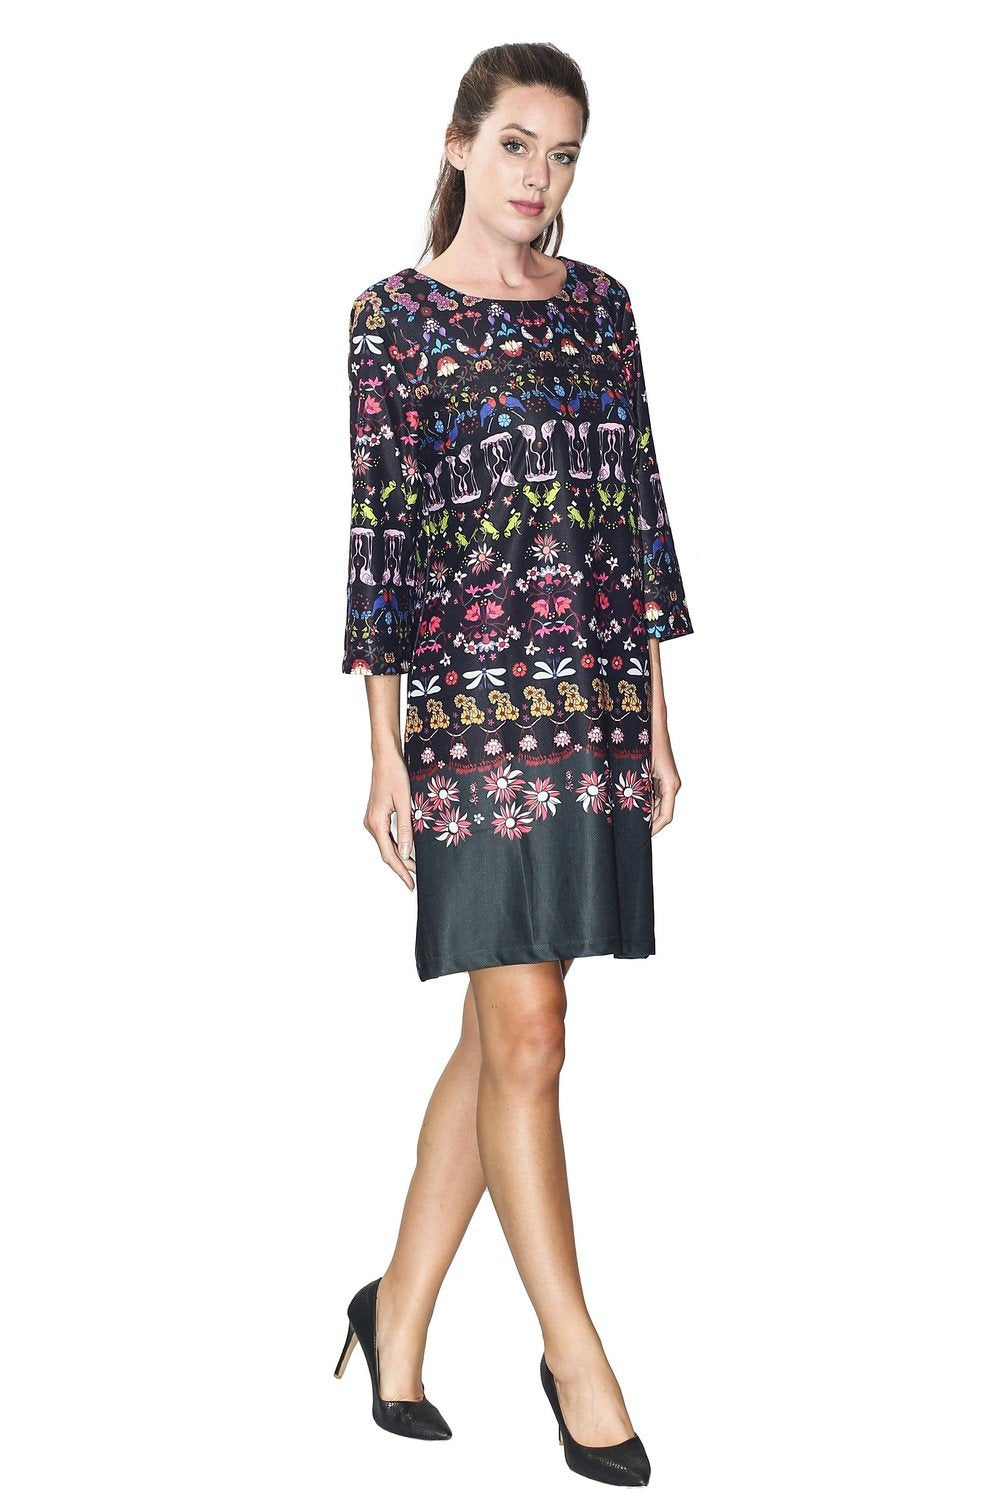 DRESS WITH FANTAISY PRINTED PATTERNS